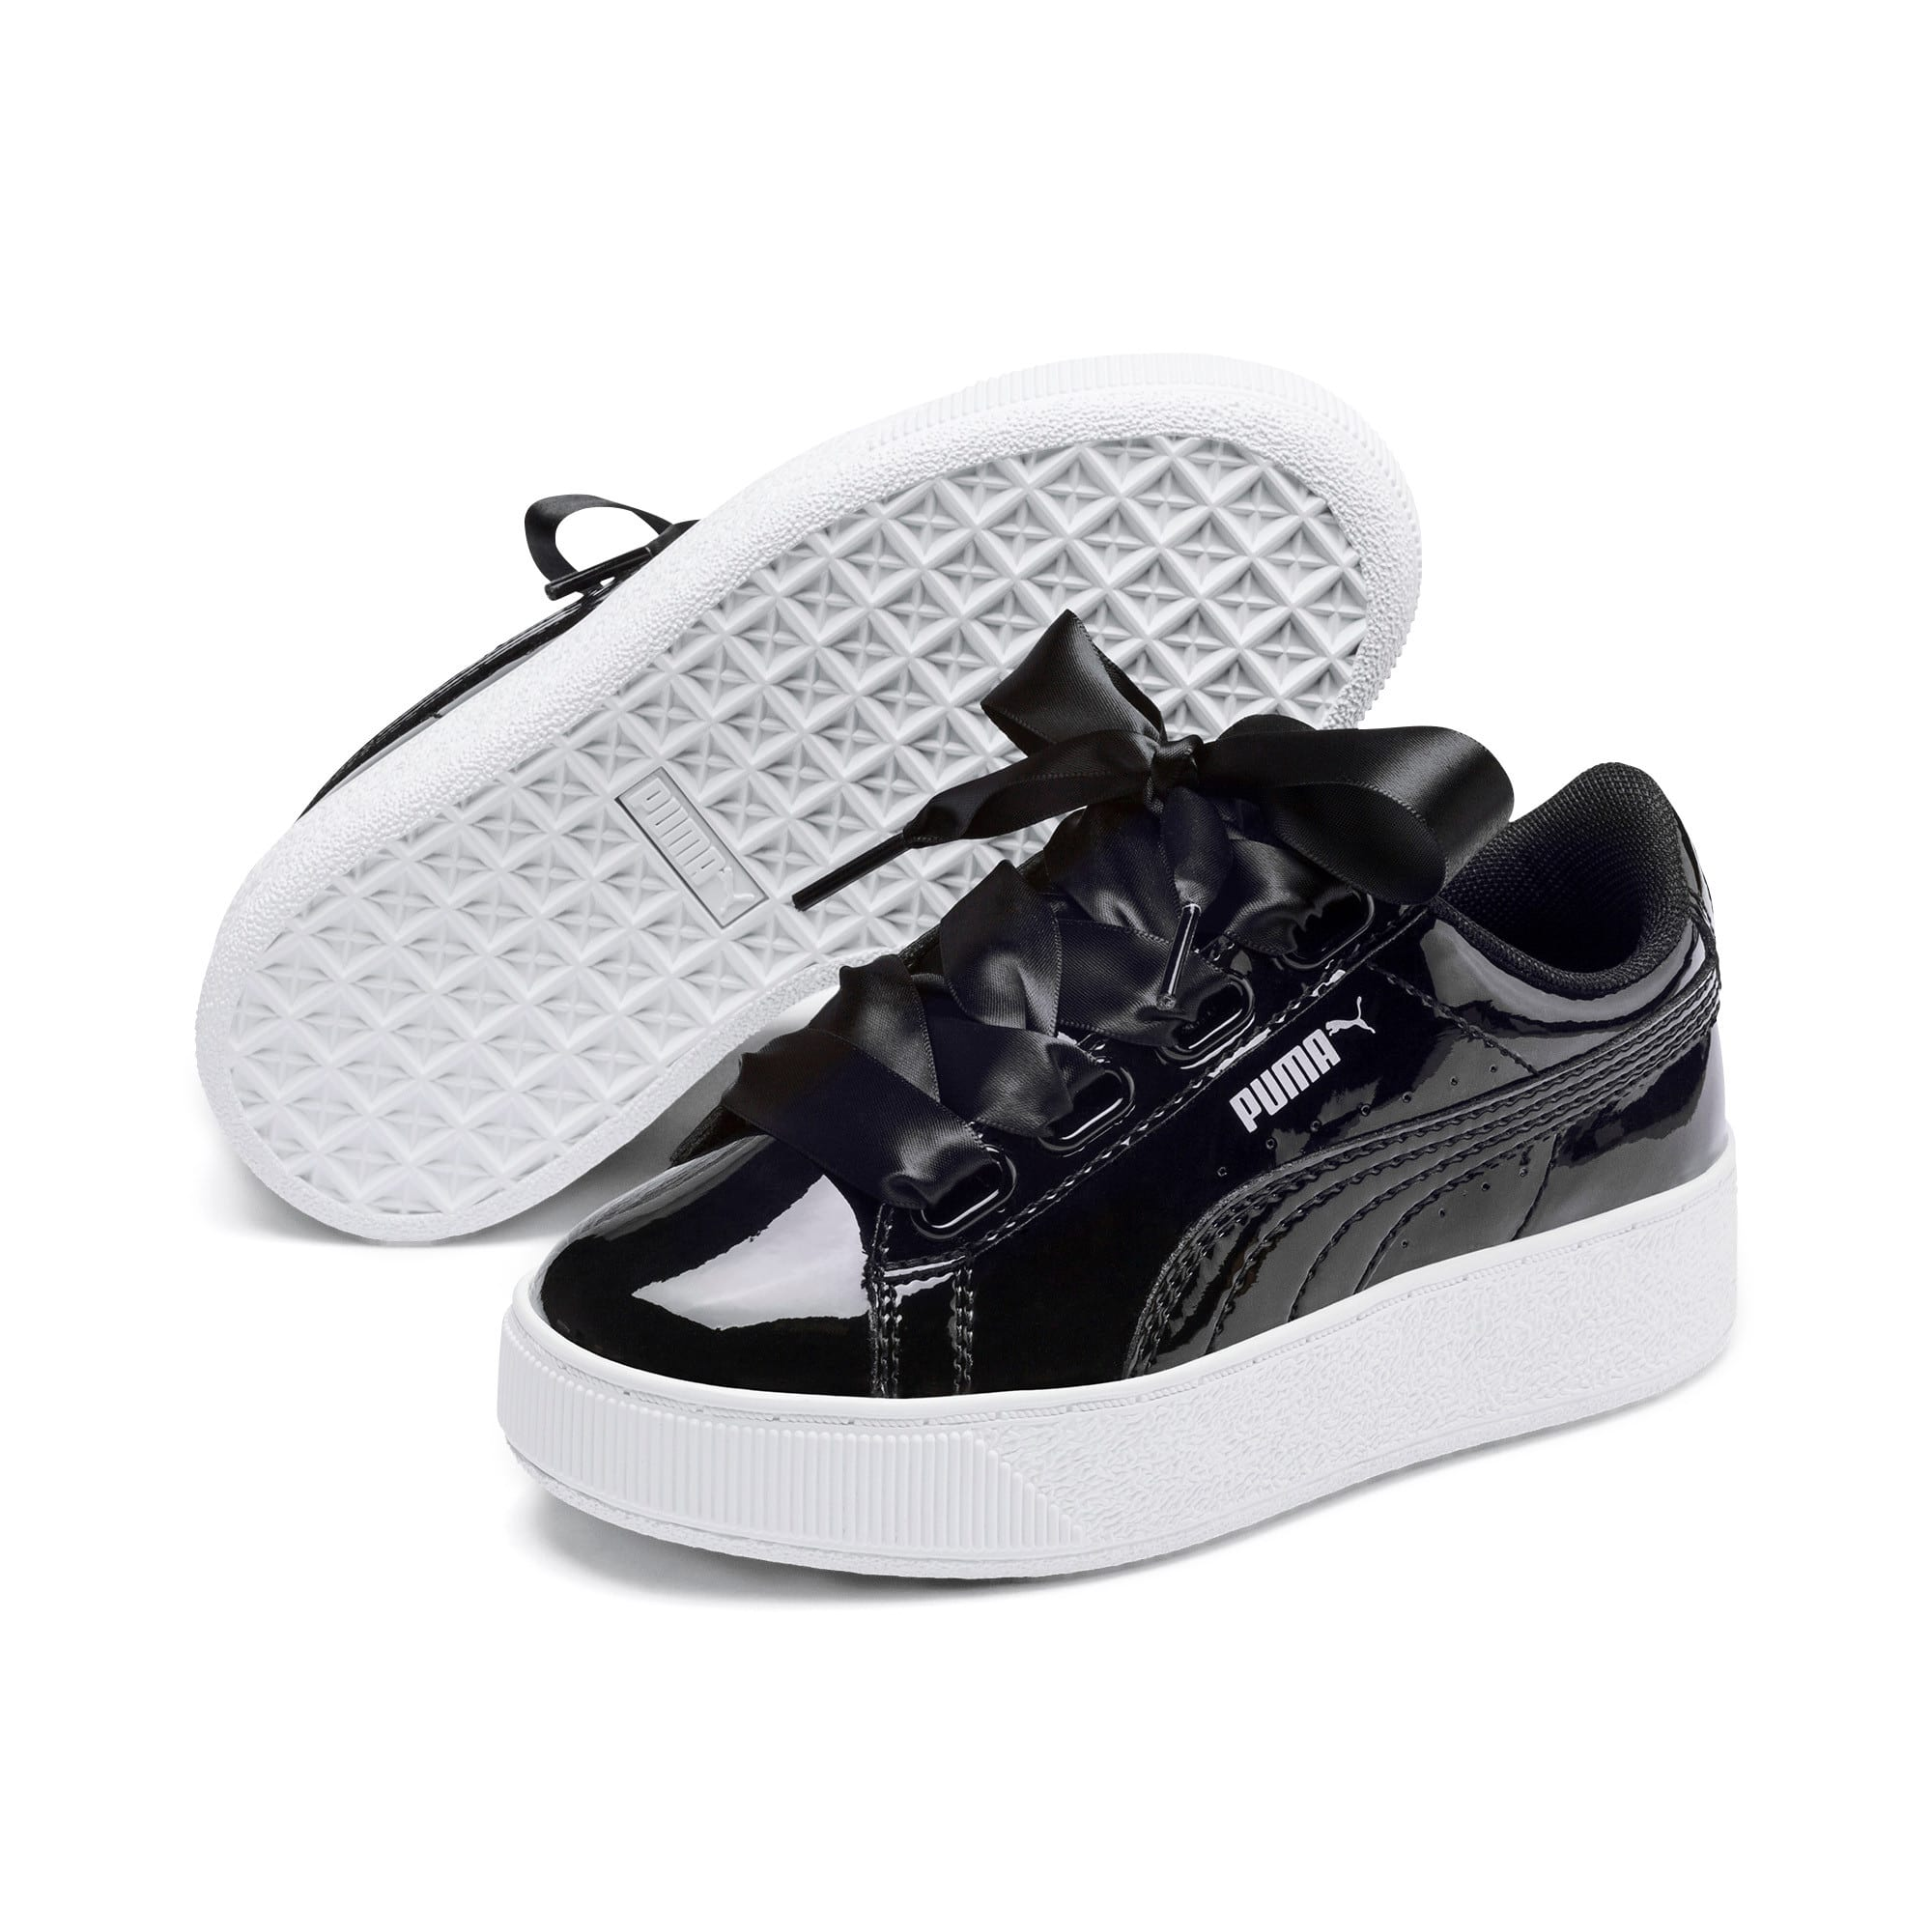 Thumbnail 2 of Vikky Platform Ribbon Patent Kids' Trainers, Puma Black-Puma Black, medium